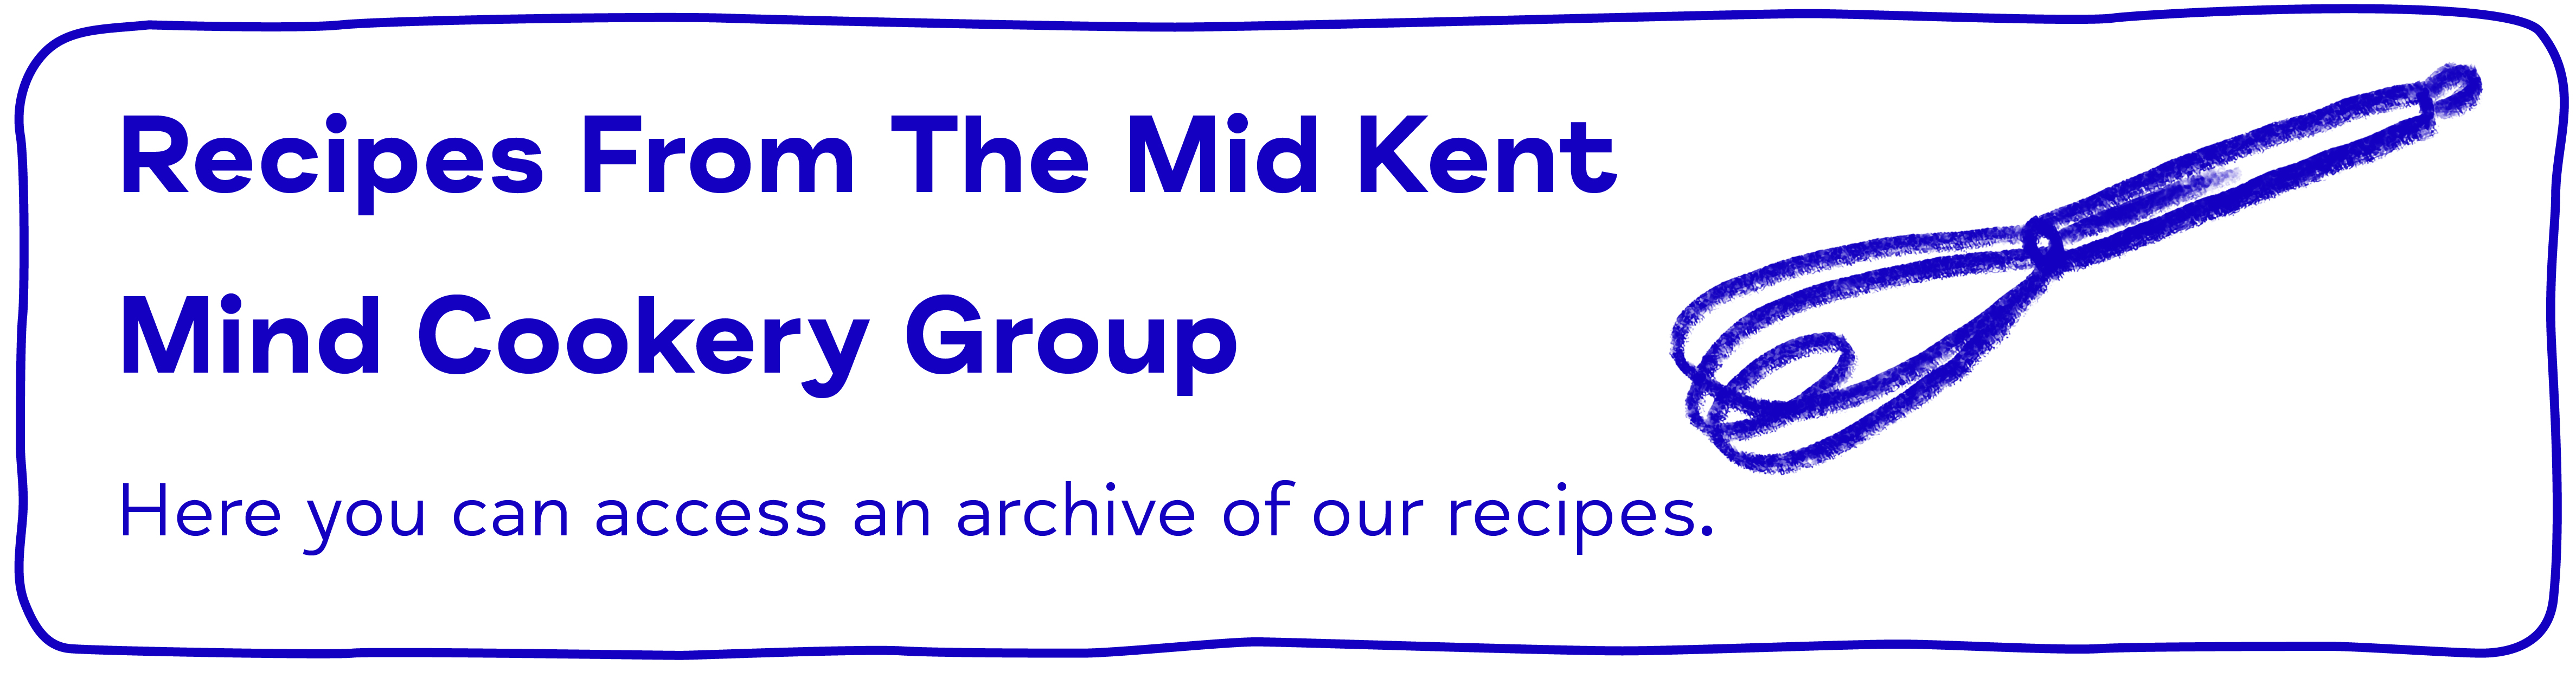 Recipes From The MMK Mind Maidstone Cookery Group. Here you can access an archive of our Recipes.